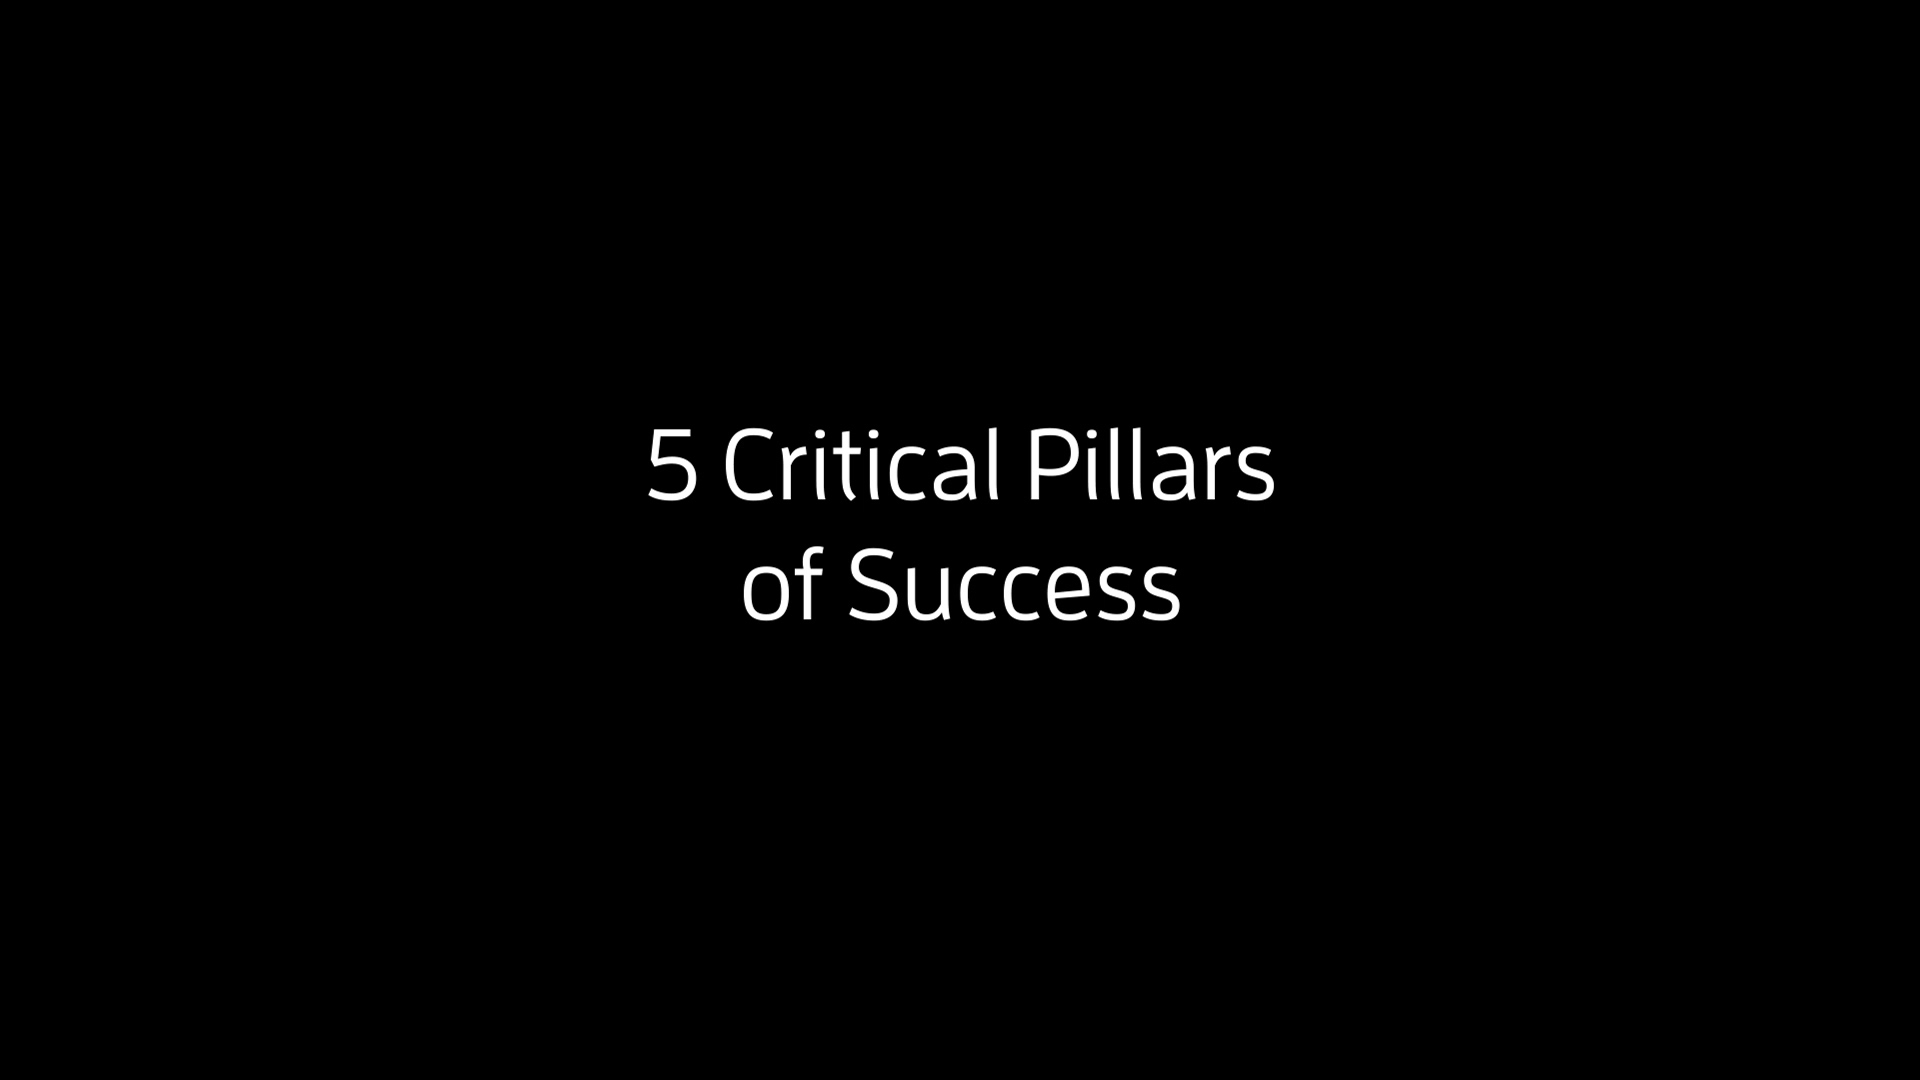 Digital Transformation of Supply Chains - 5 Pillars of Success